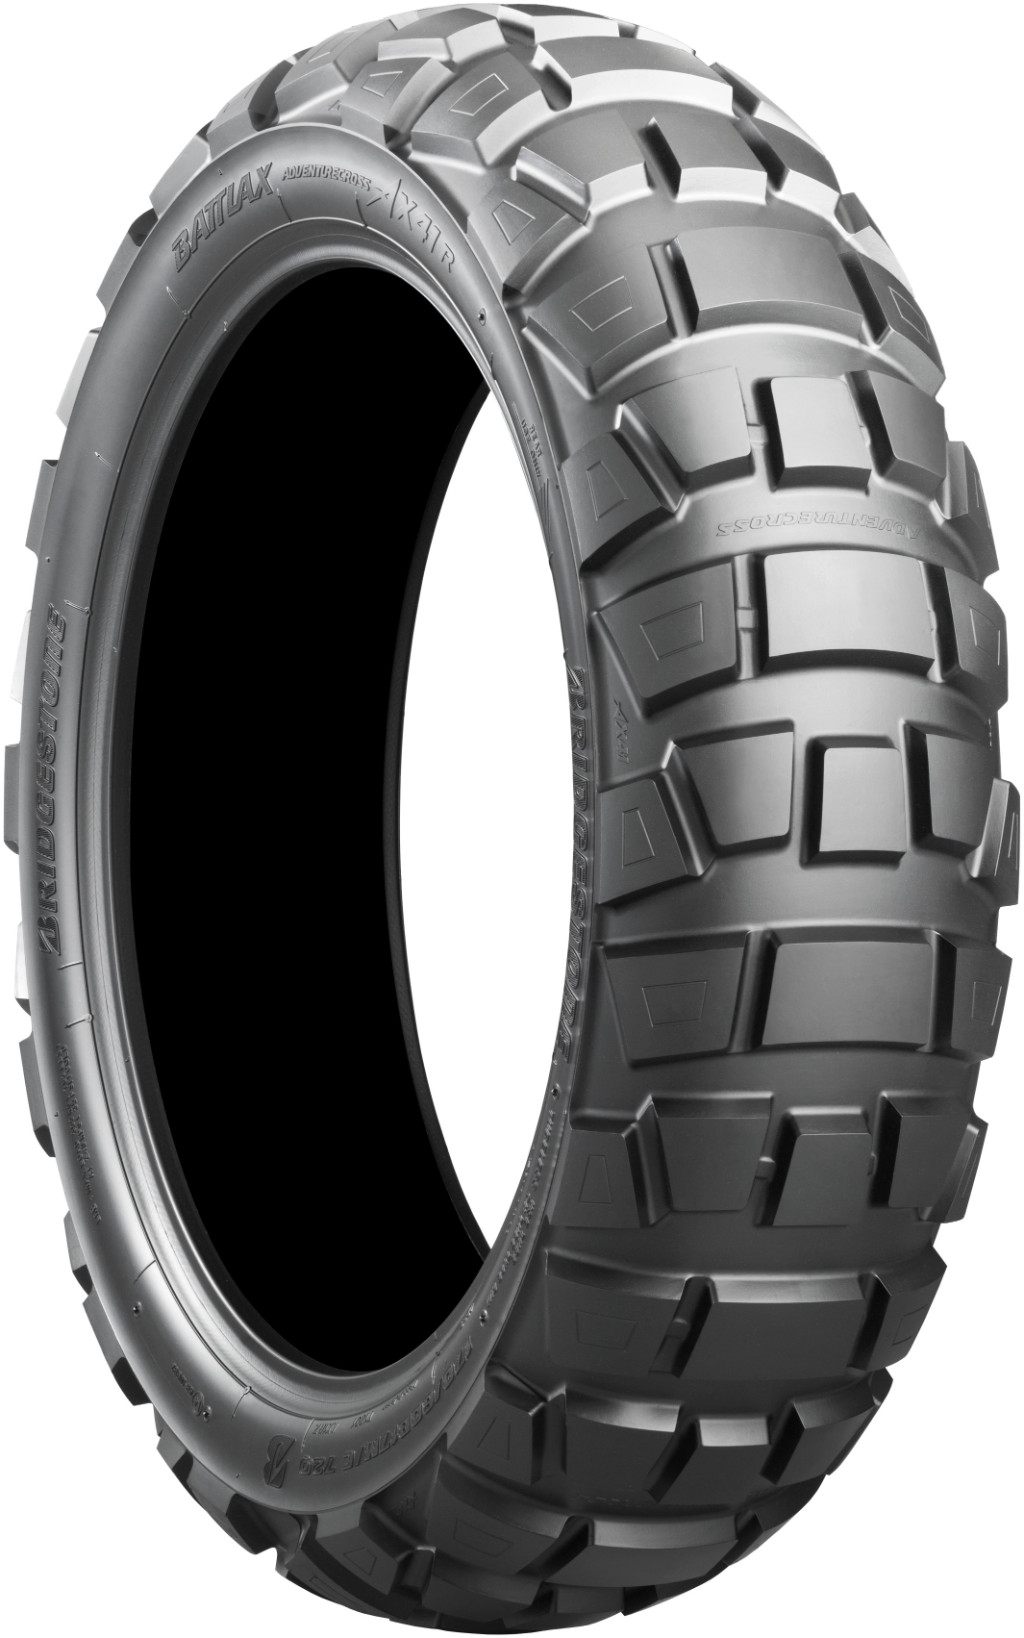 BRIDGESTONE ADVENTURECROSS BATTLAX AX41 [150/70В 17М/С 69Q] BATTLAX Adventur